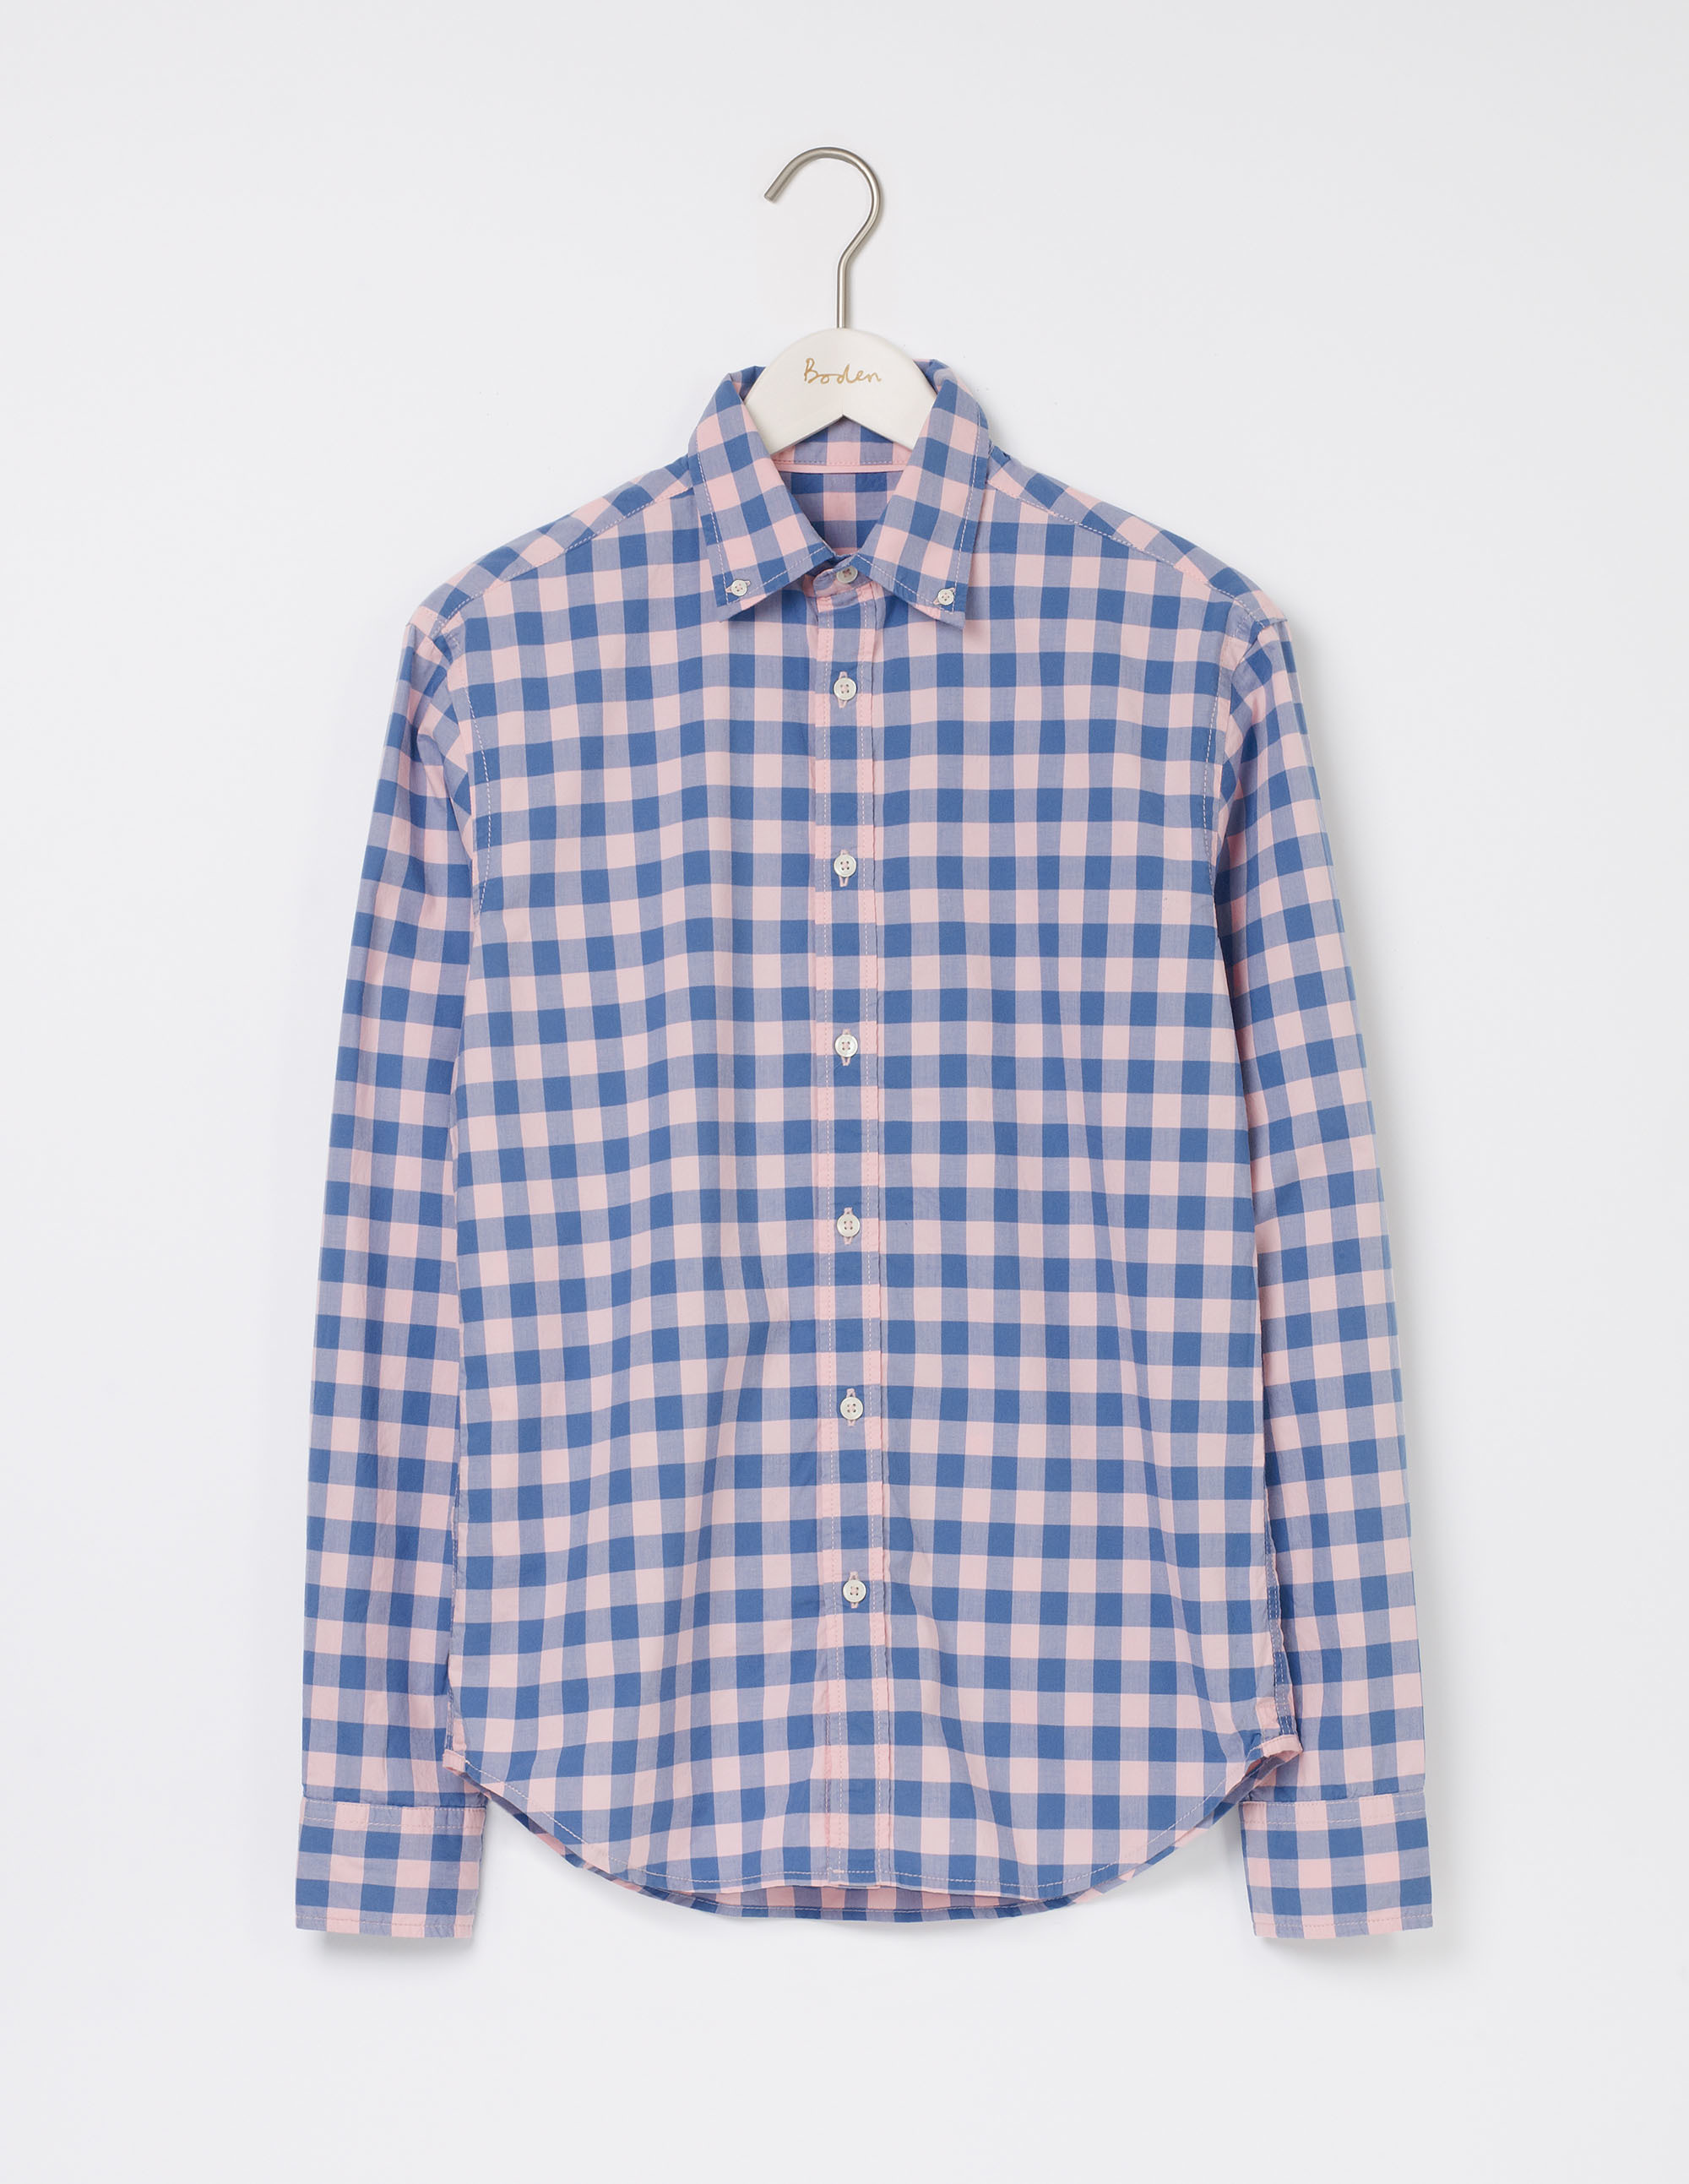 Boden Soft Pink Gingham Slim Fit Garment Dye Shirt